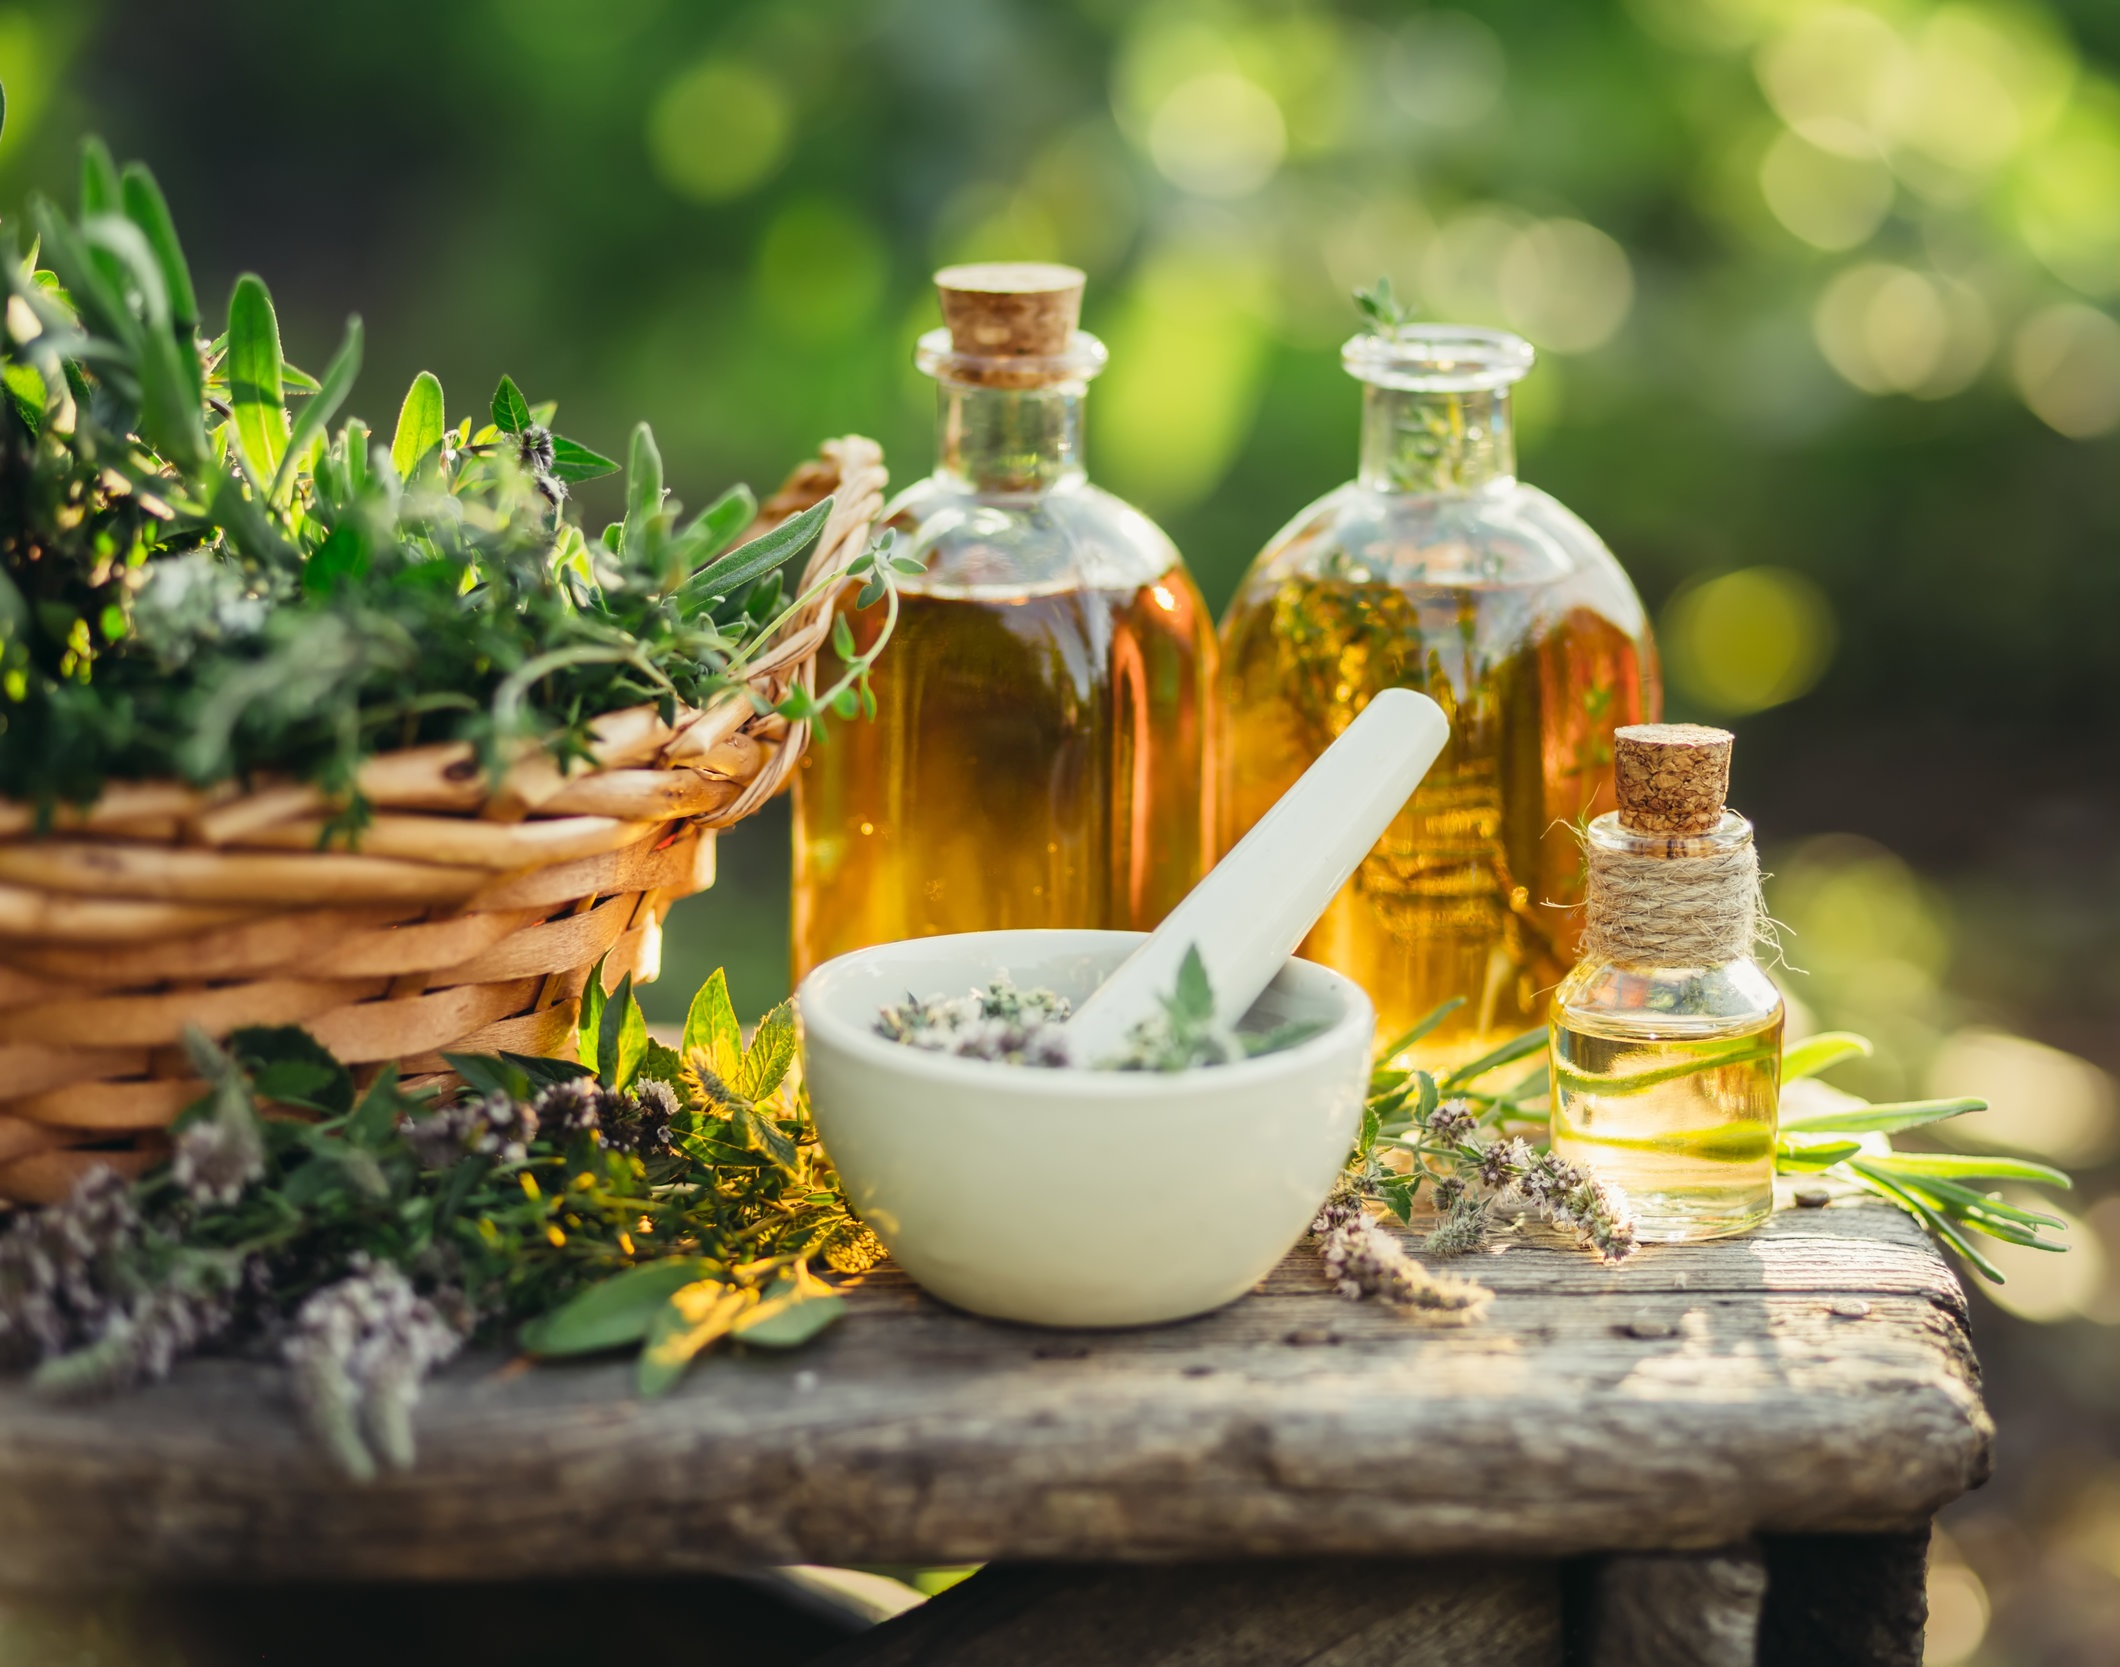 Herbal medicine consults - Herbal medicine is at the core of all of my offerings. I am happy to meet with you for an herbal consult and help assist you in your healing and wellness.